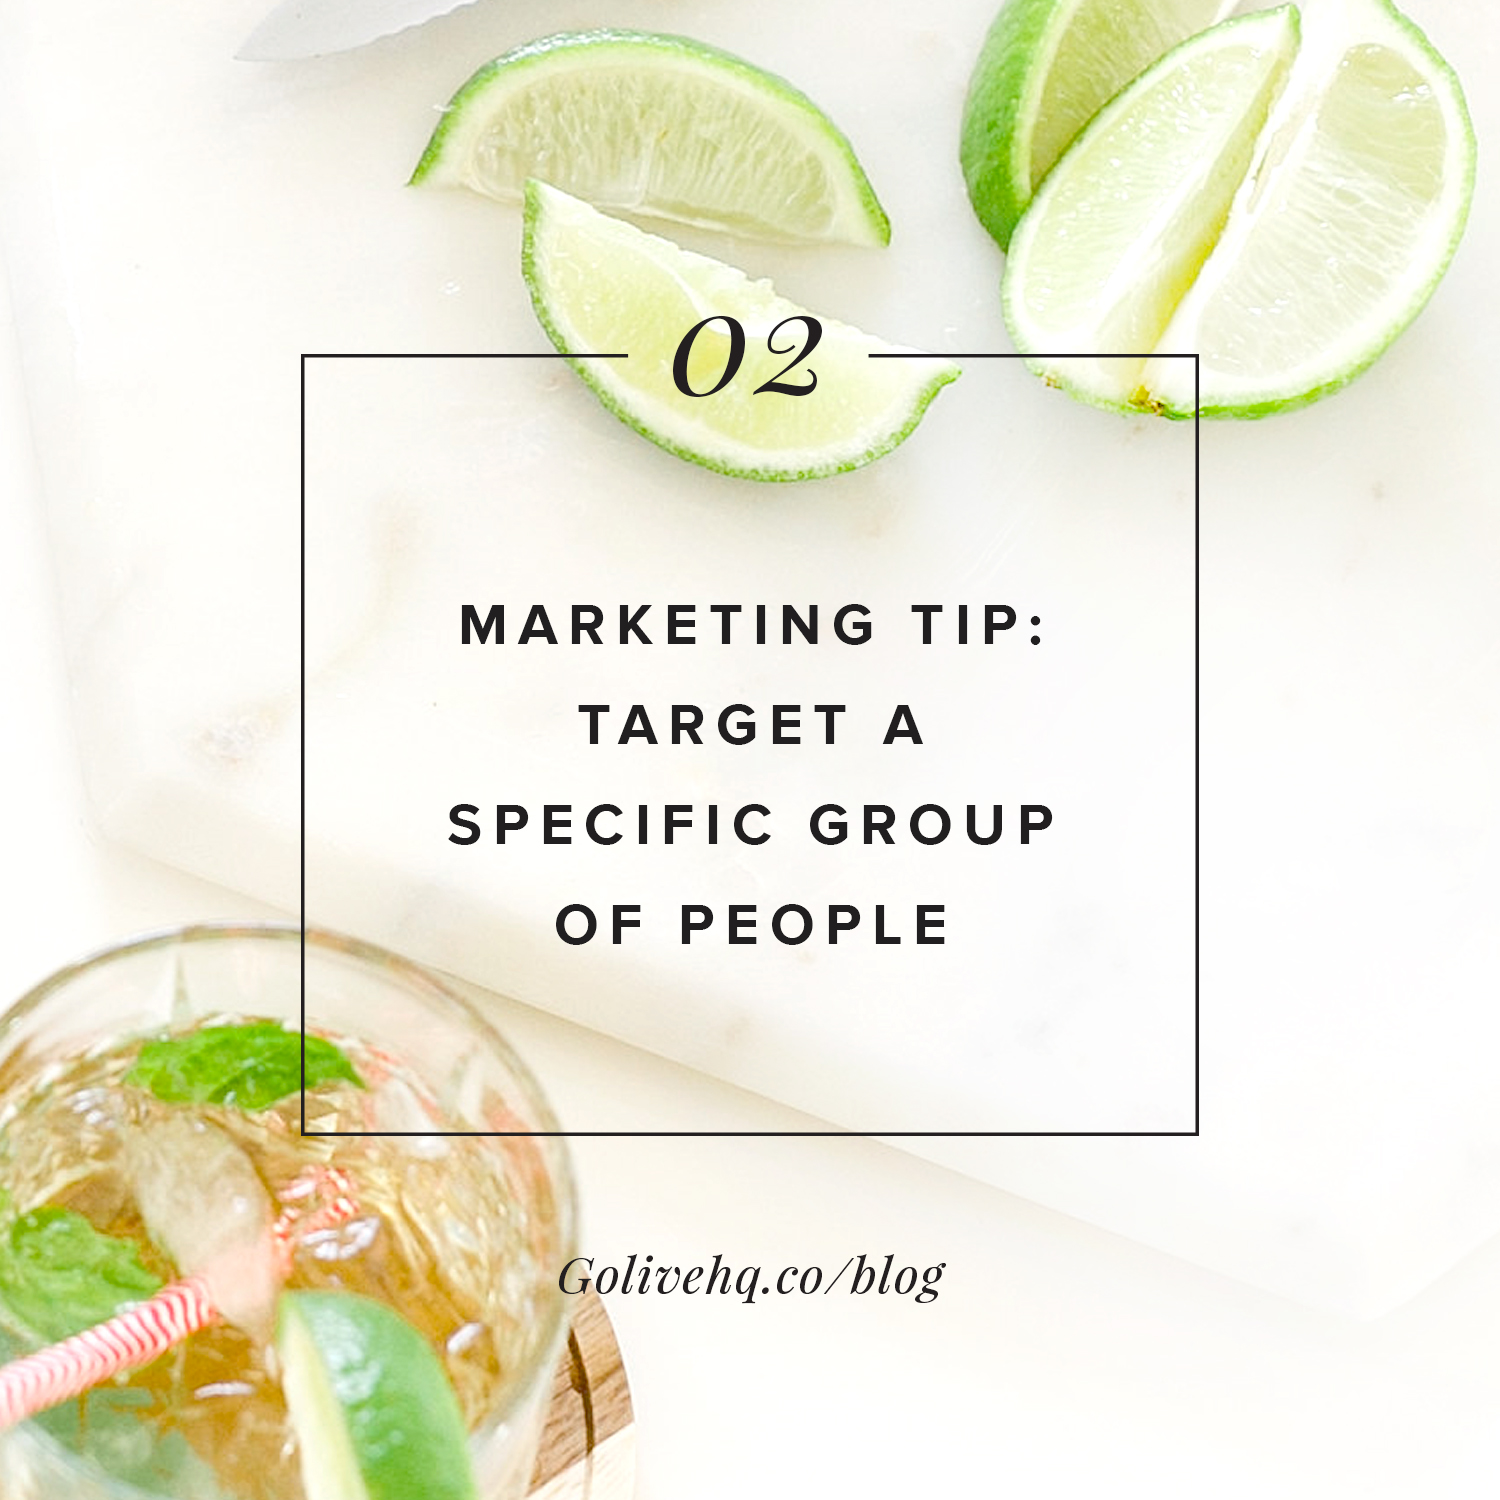 marketing tip: target a specific group of people